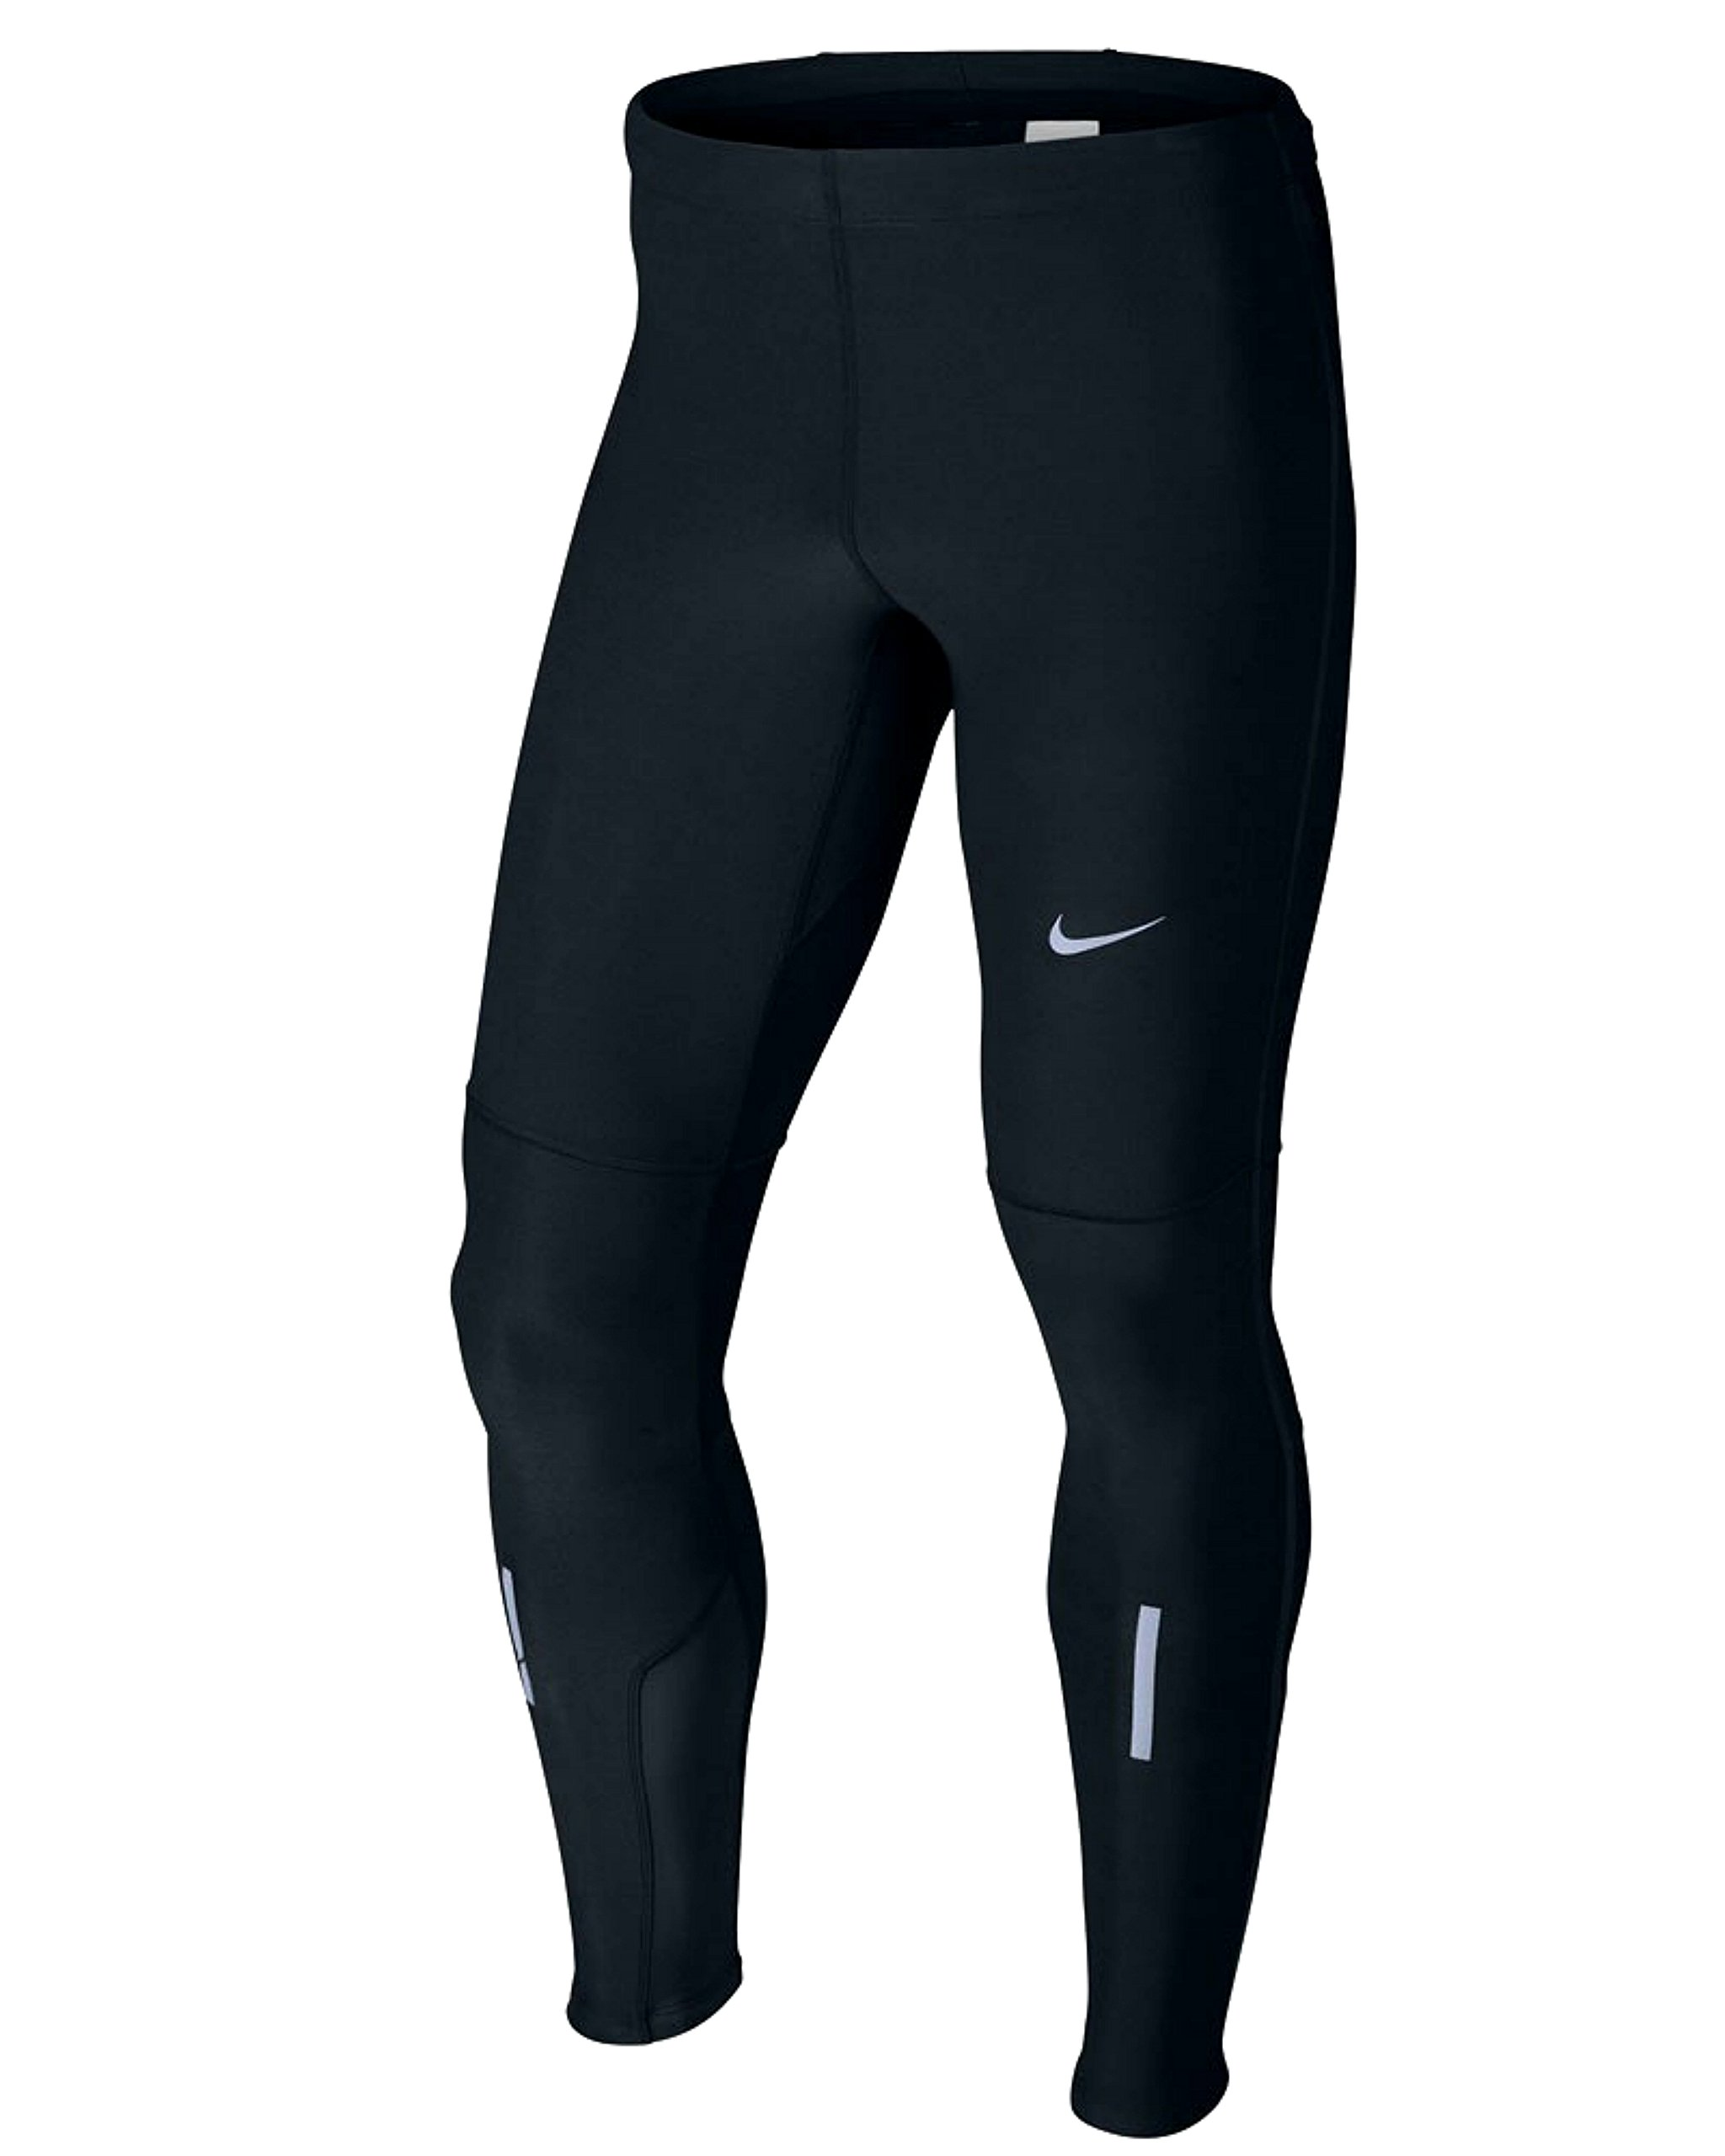 Nike Mens Dri-Fit Tech Running Tights-Black (X-LARGE, BLACK)